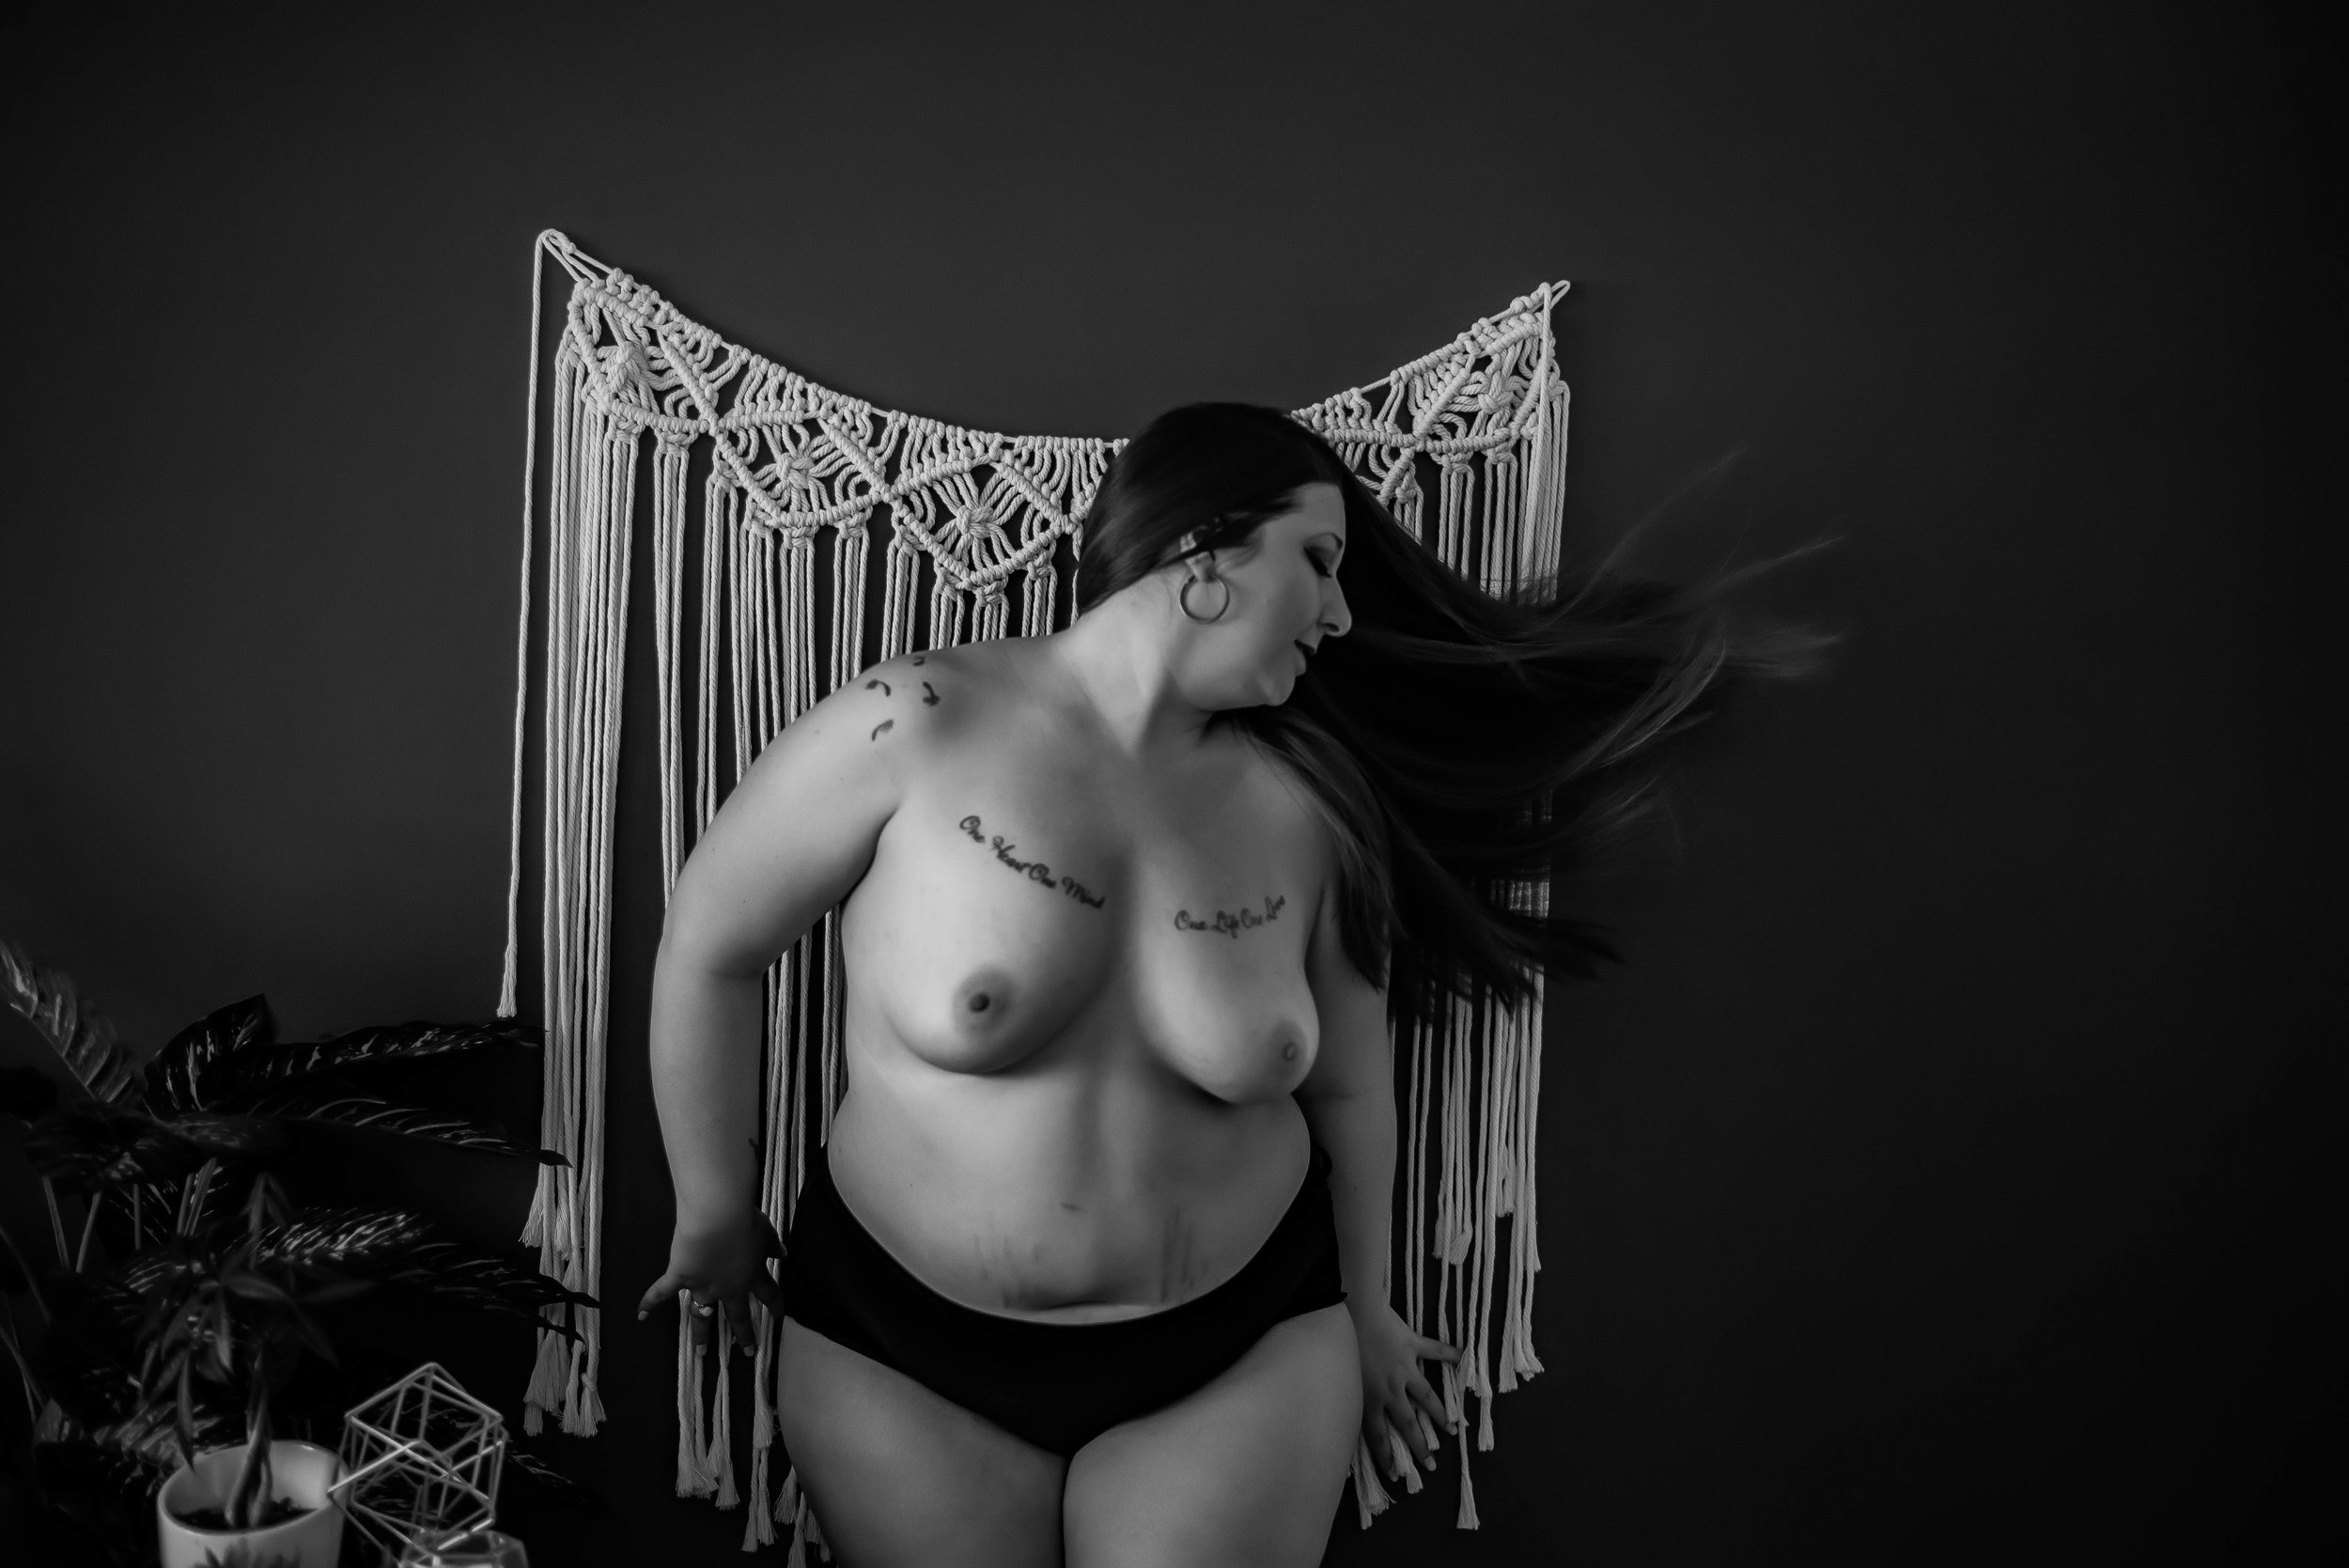 Calgary Boudoir Photographer, Artist Shannon Smith, Plus Size Boudoir, Nude, Implied Nude, Topless, Sexy photos, Body Positive